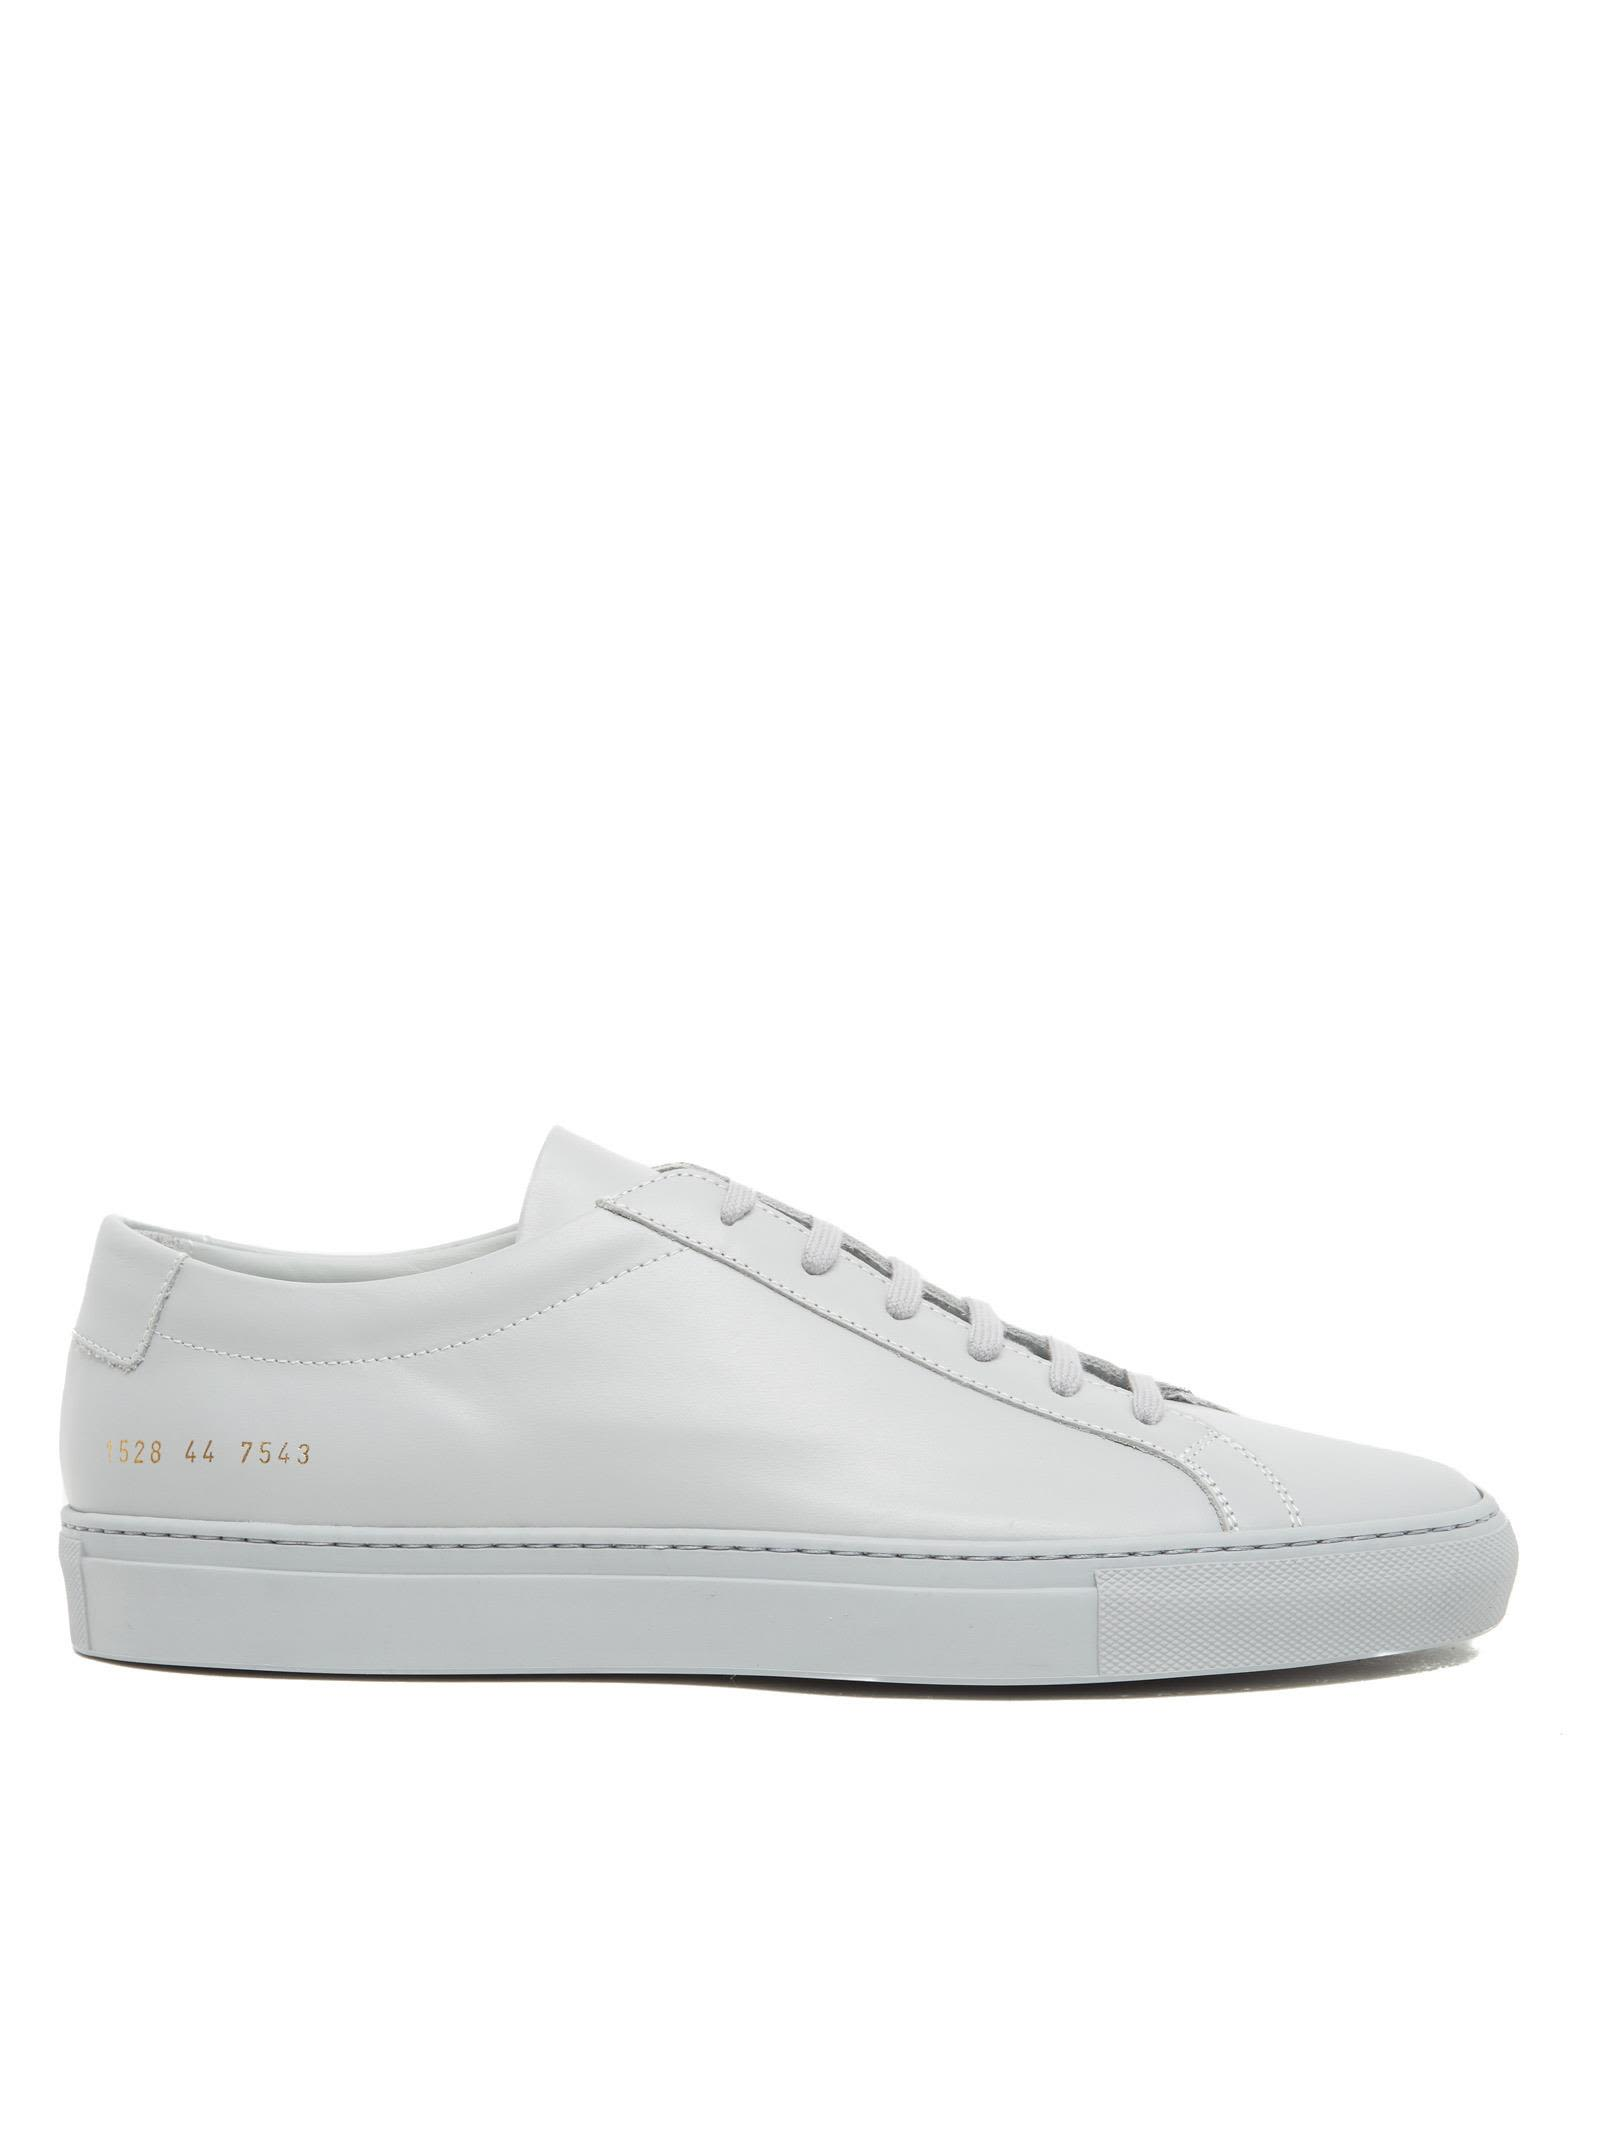 COMMON PROJECTS ACHILLES SHOES